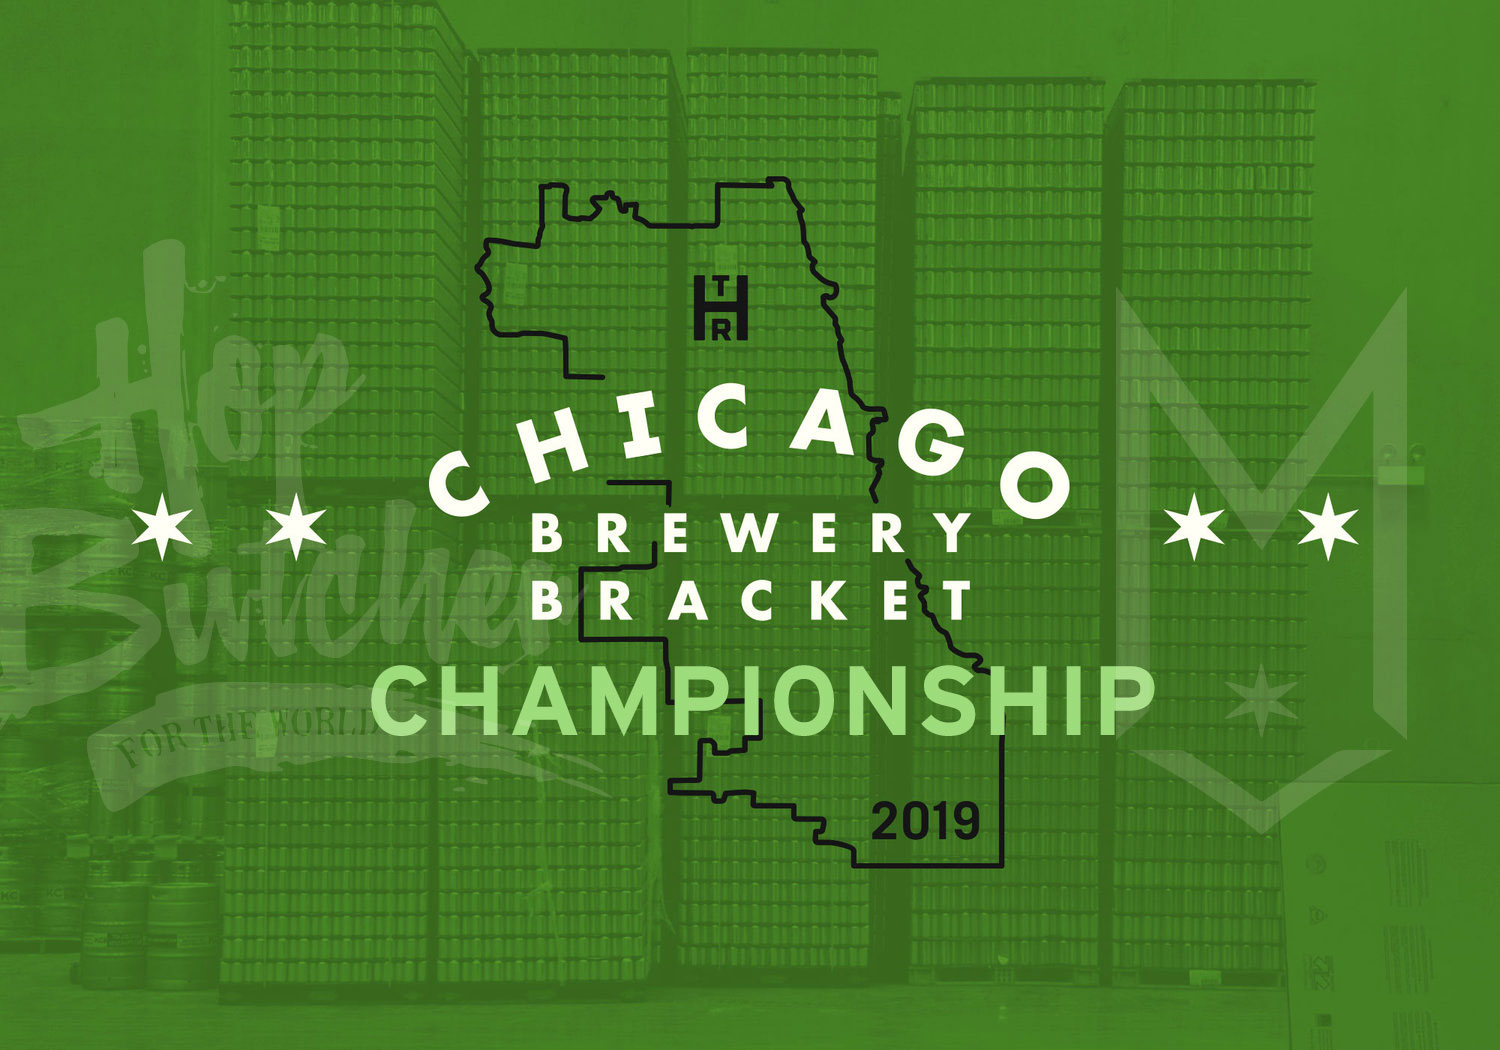 ChicagoBreweryBracket_2019-2.jpg